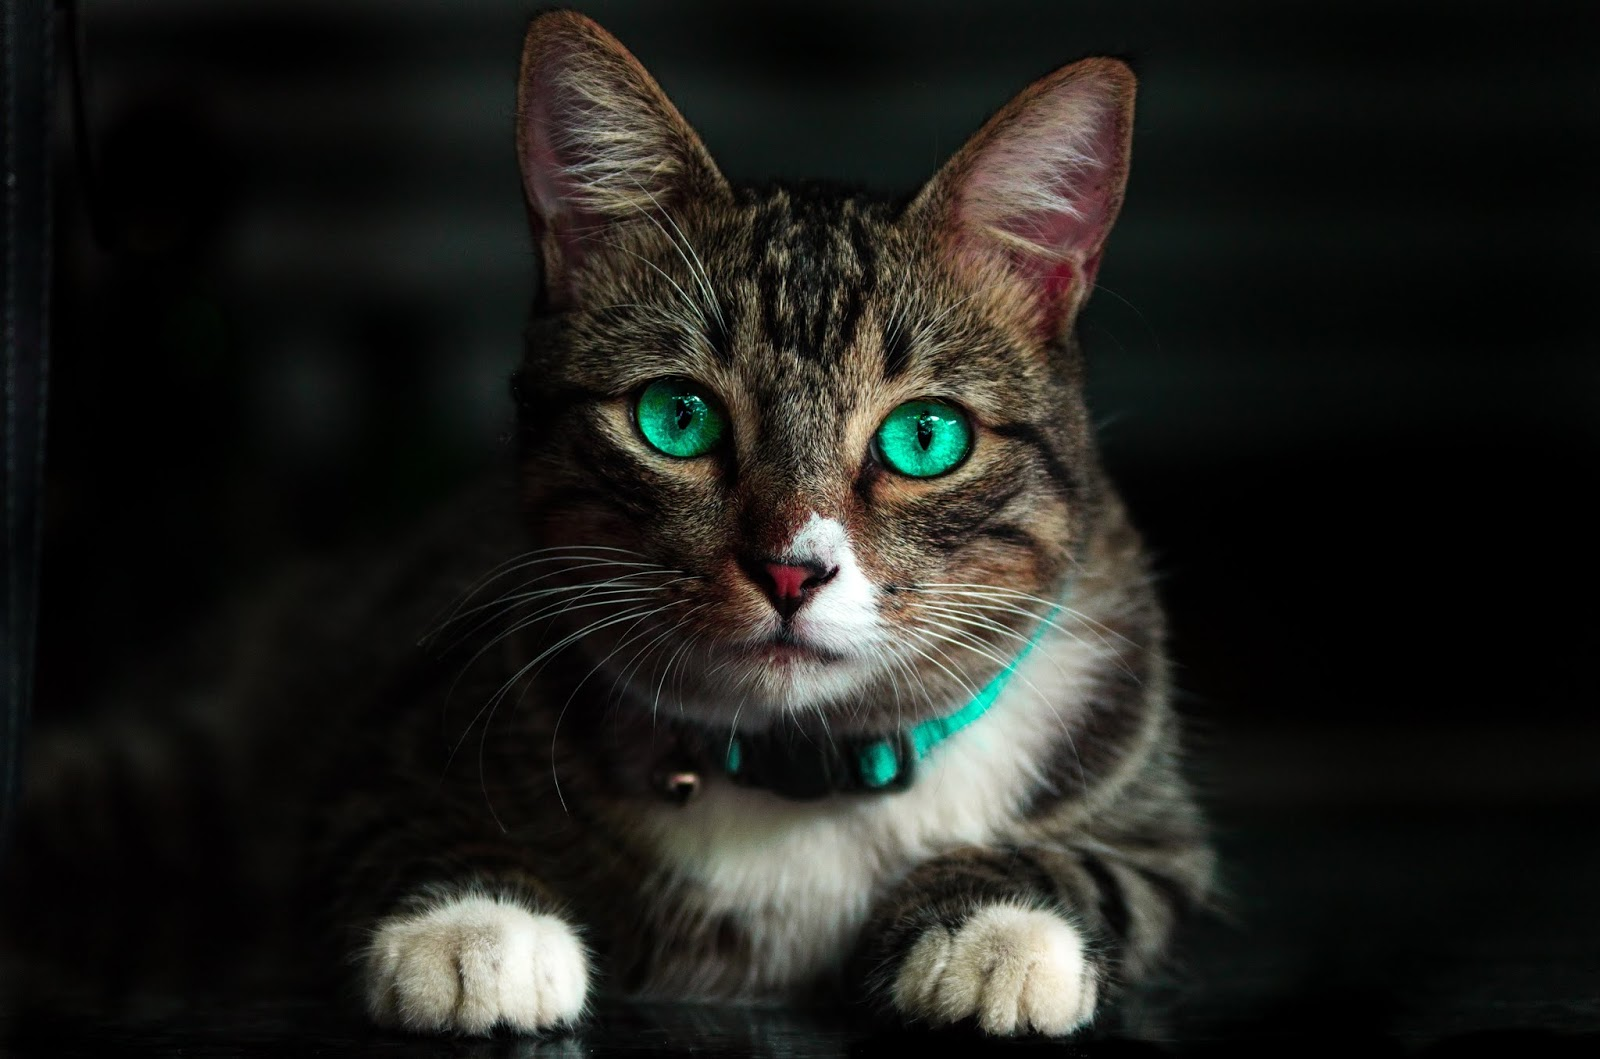 Brown cat with green eyes,cat images